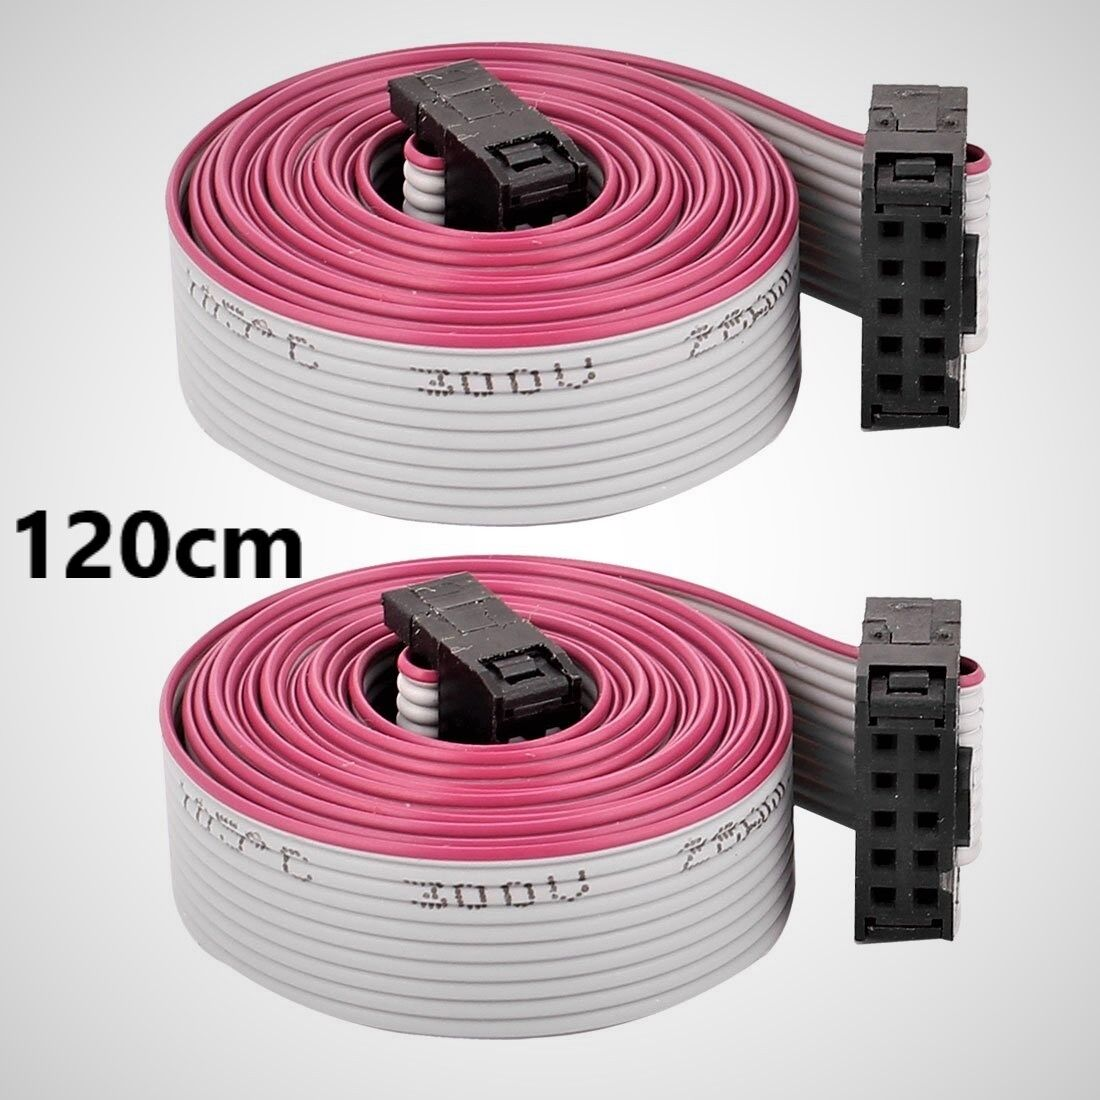 120cm 2004 12864 LCD Extension Cable 3D Printer Prusa Folger Anet Creality Ramps